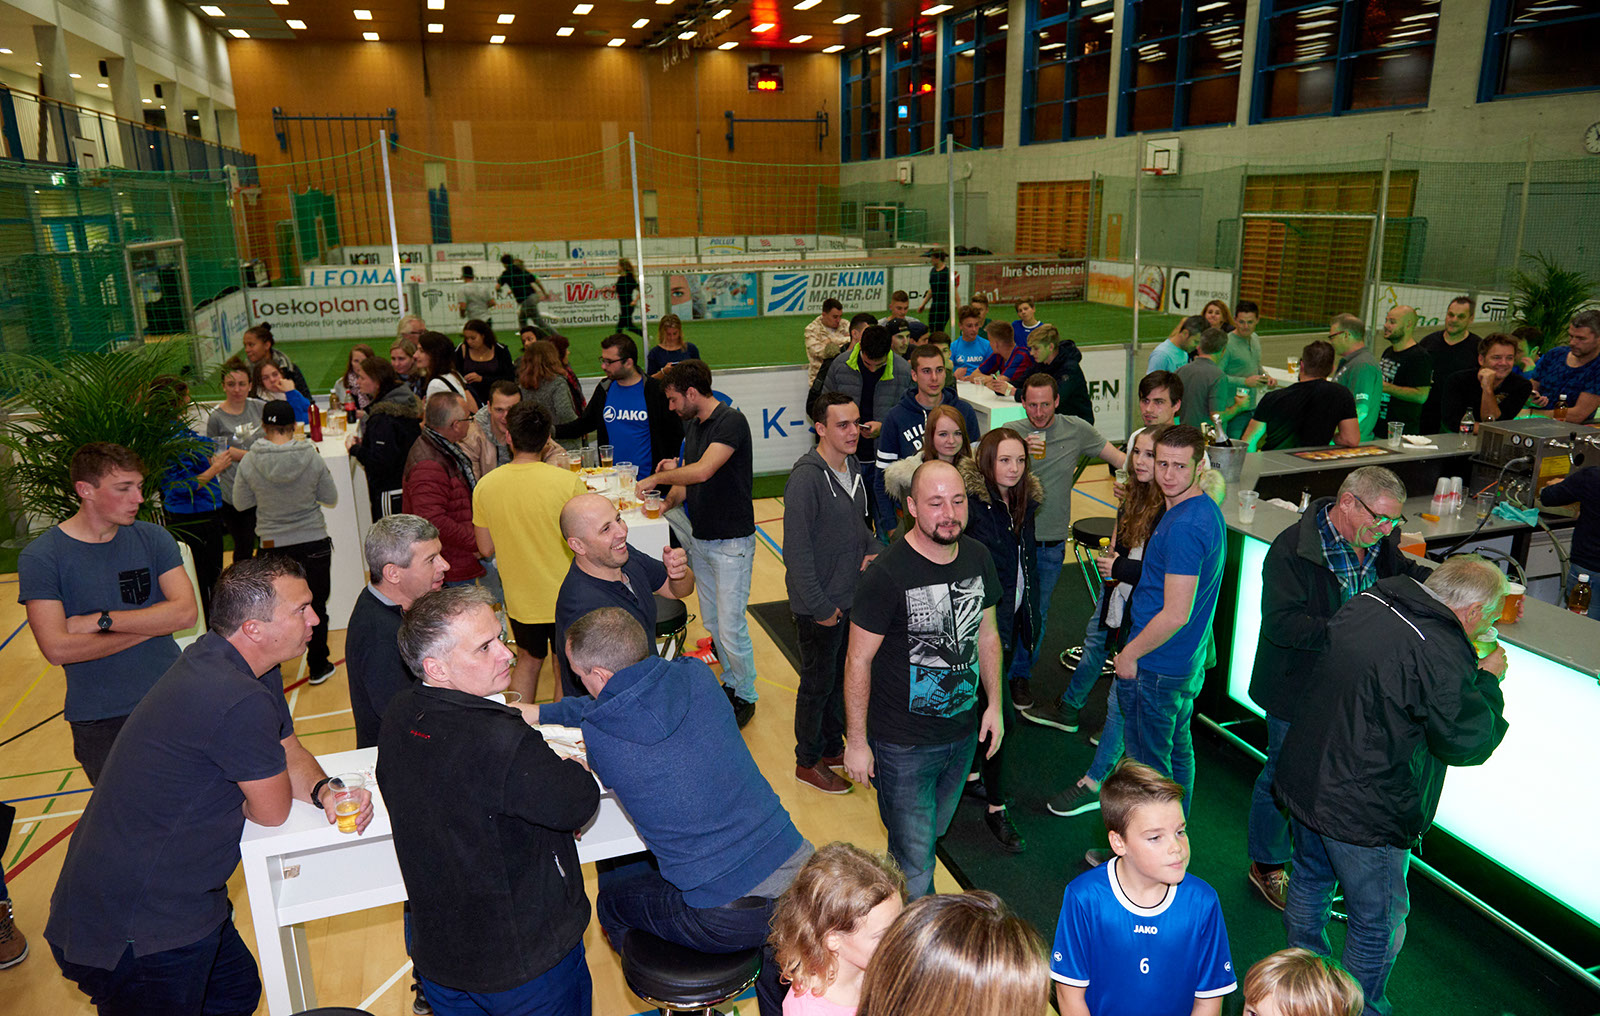 Bodensee-Cup_20171111_001252.jpg